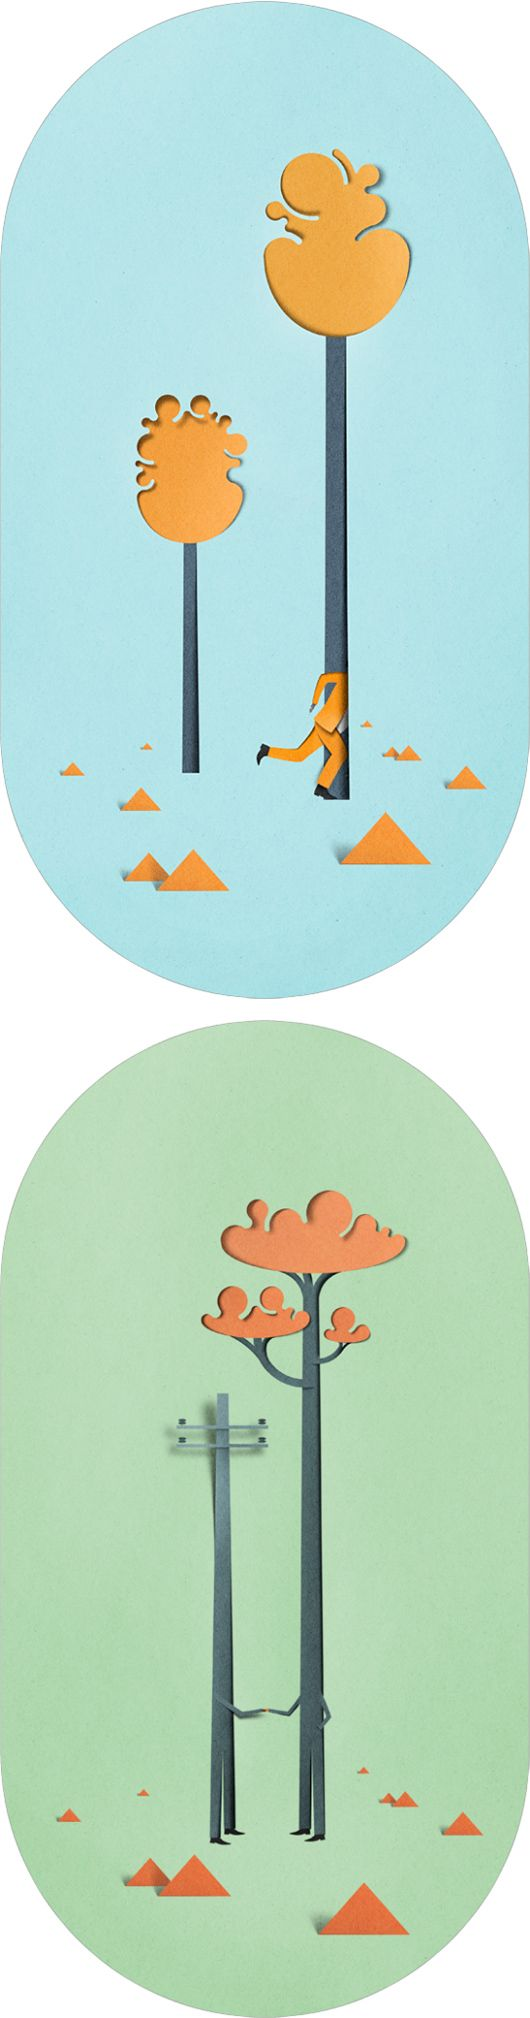 25 april - Sometimes you need a day off :p // Paper Cut Illustrations by Eiko Ojala // Each day one pin that reflects your day